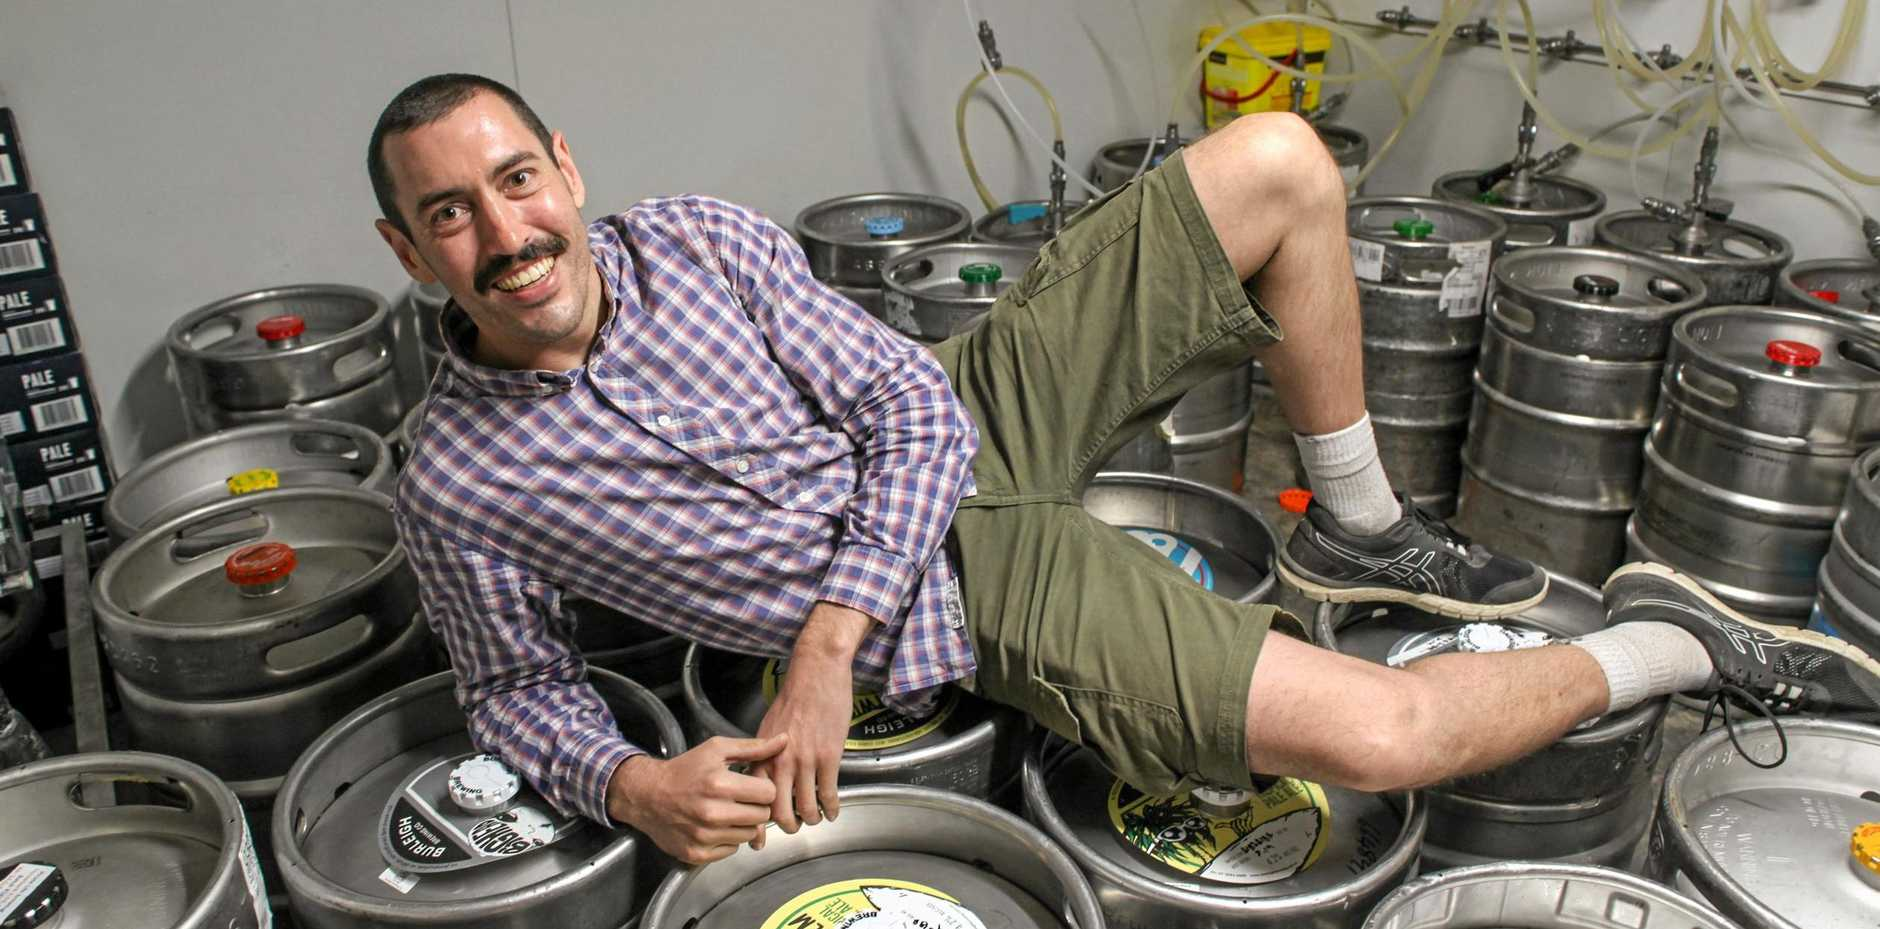 Adrian Young with stacks of kegs ready for thirsty punters headed for the inaugural Mackay Beer and BBQ Festival.